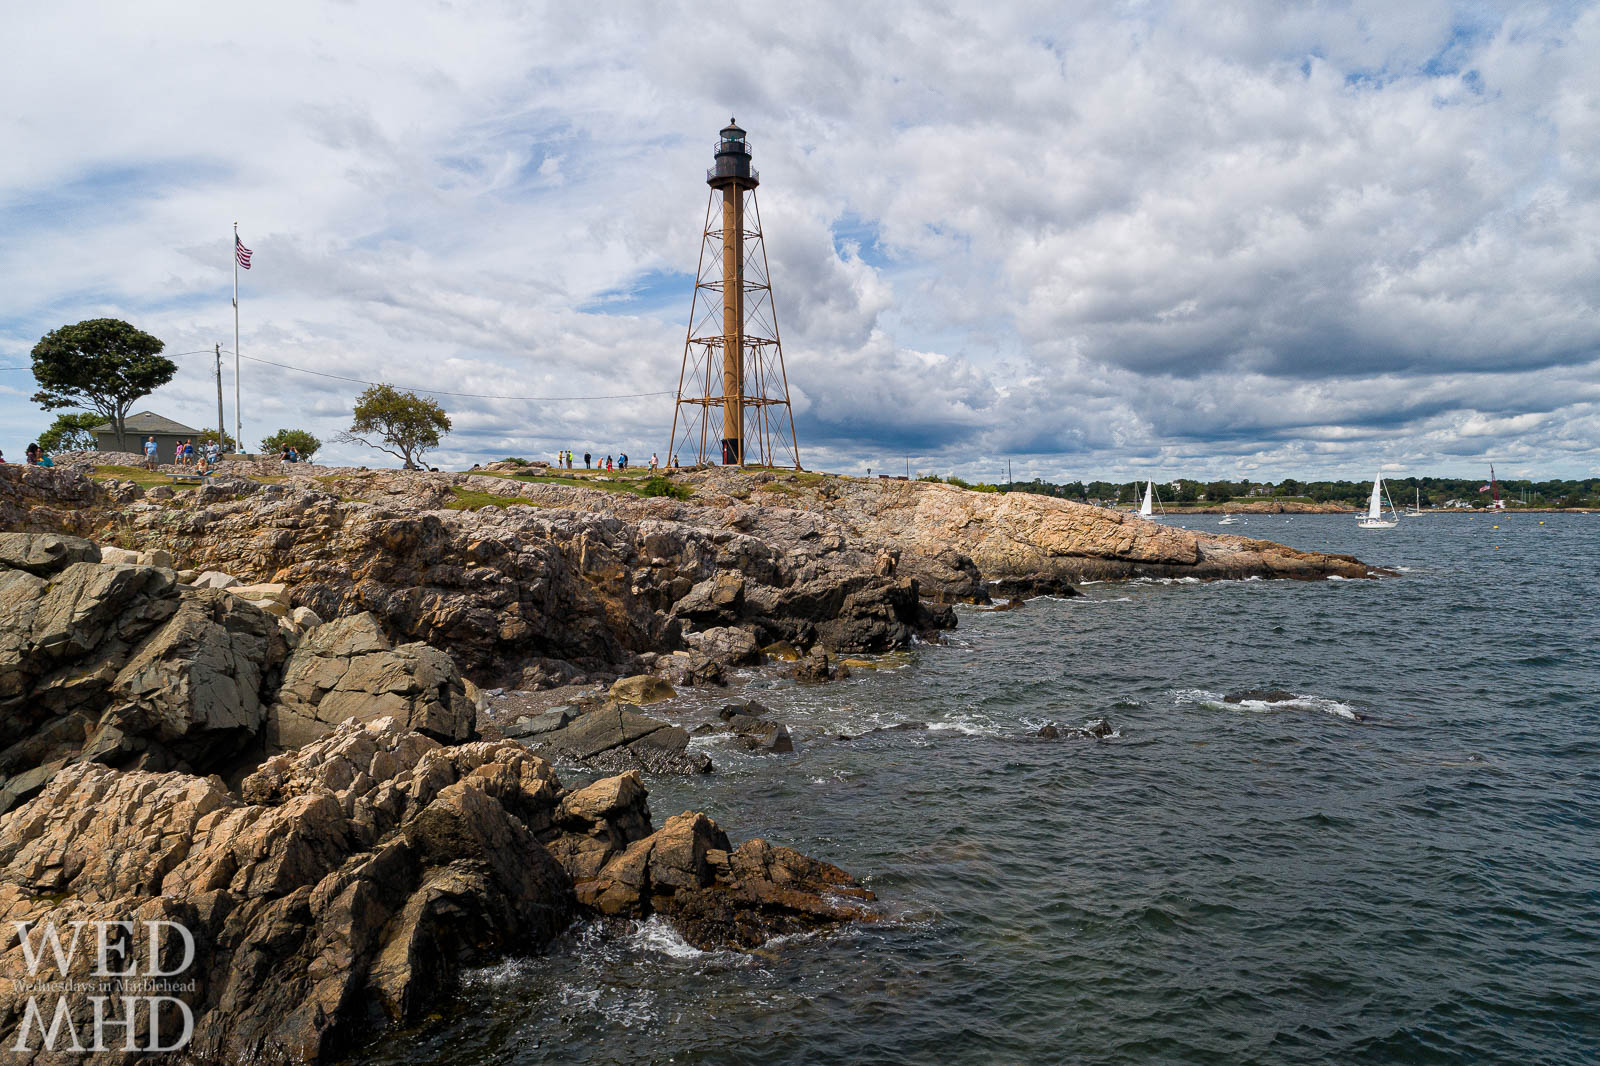 The rocky shores of Chandler Hovey Park lead towards Marblehead Light as seen from 20 feet above sea level and captured via drone